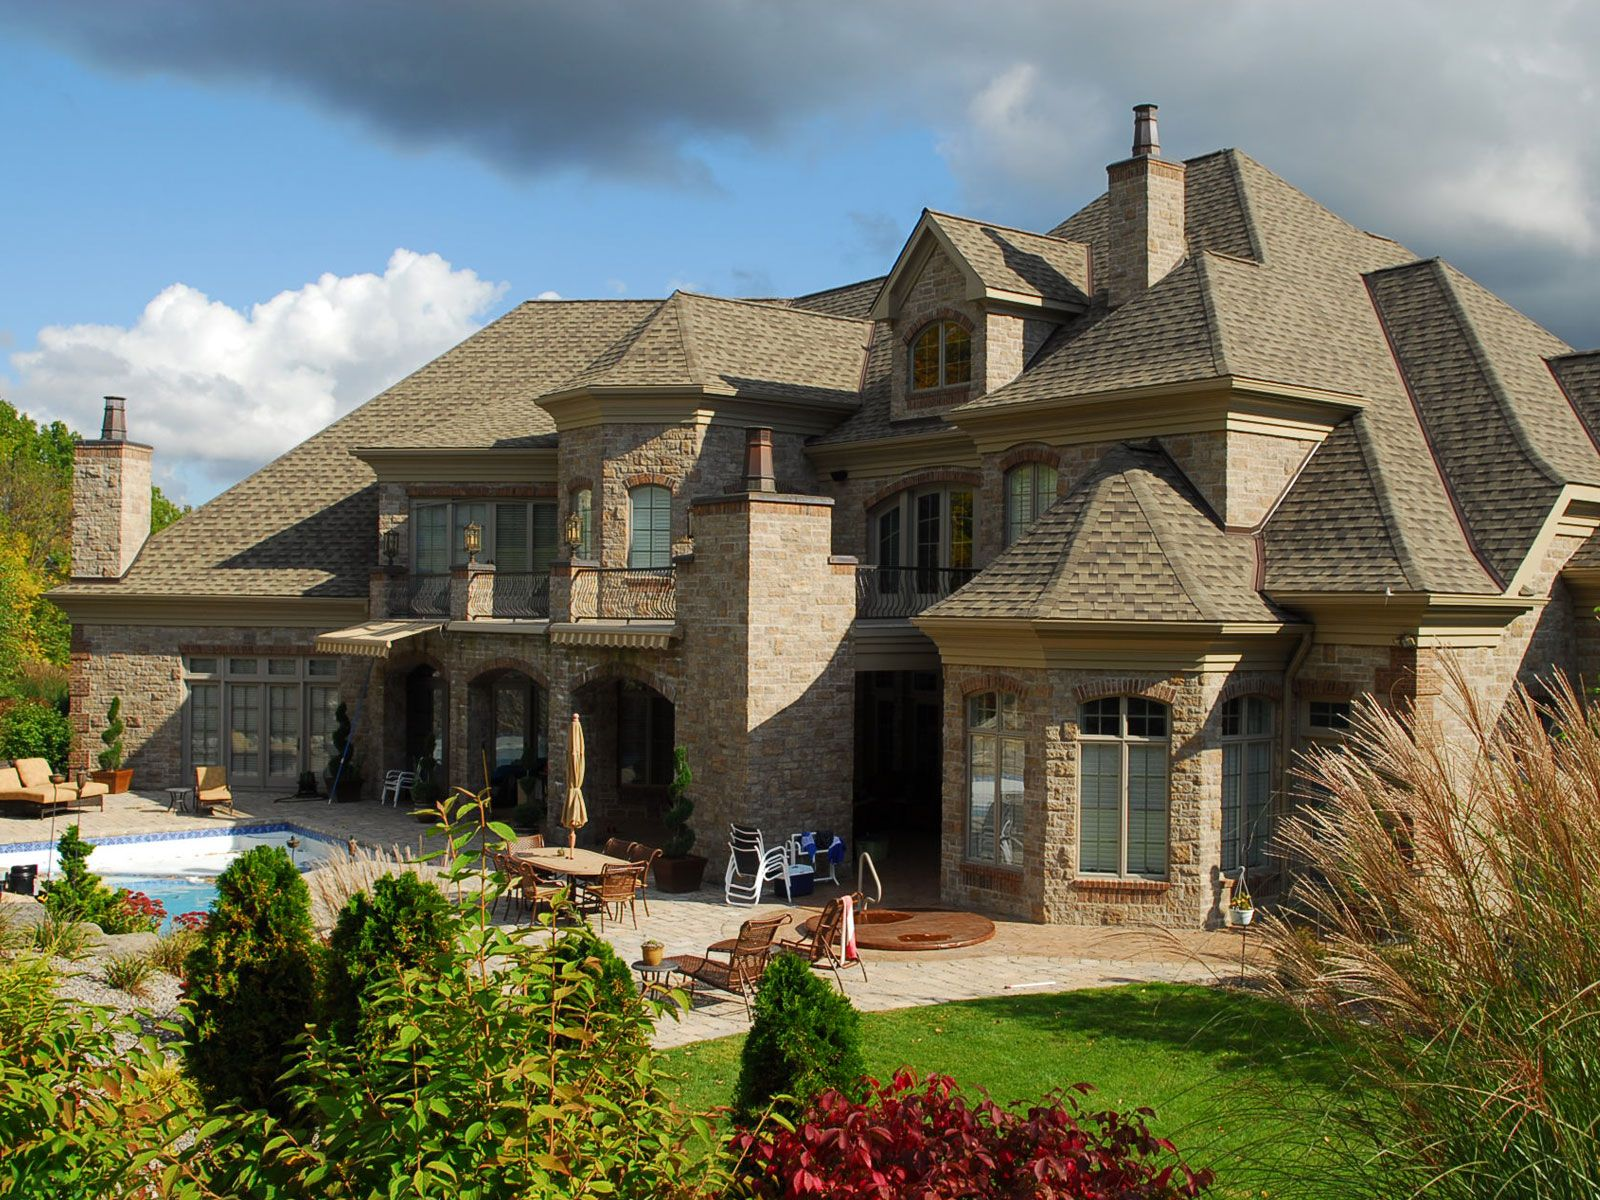 Cambria q stone with clay brick accents dream home for Beautiful dream homes